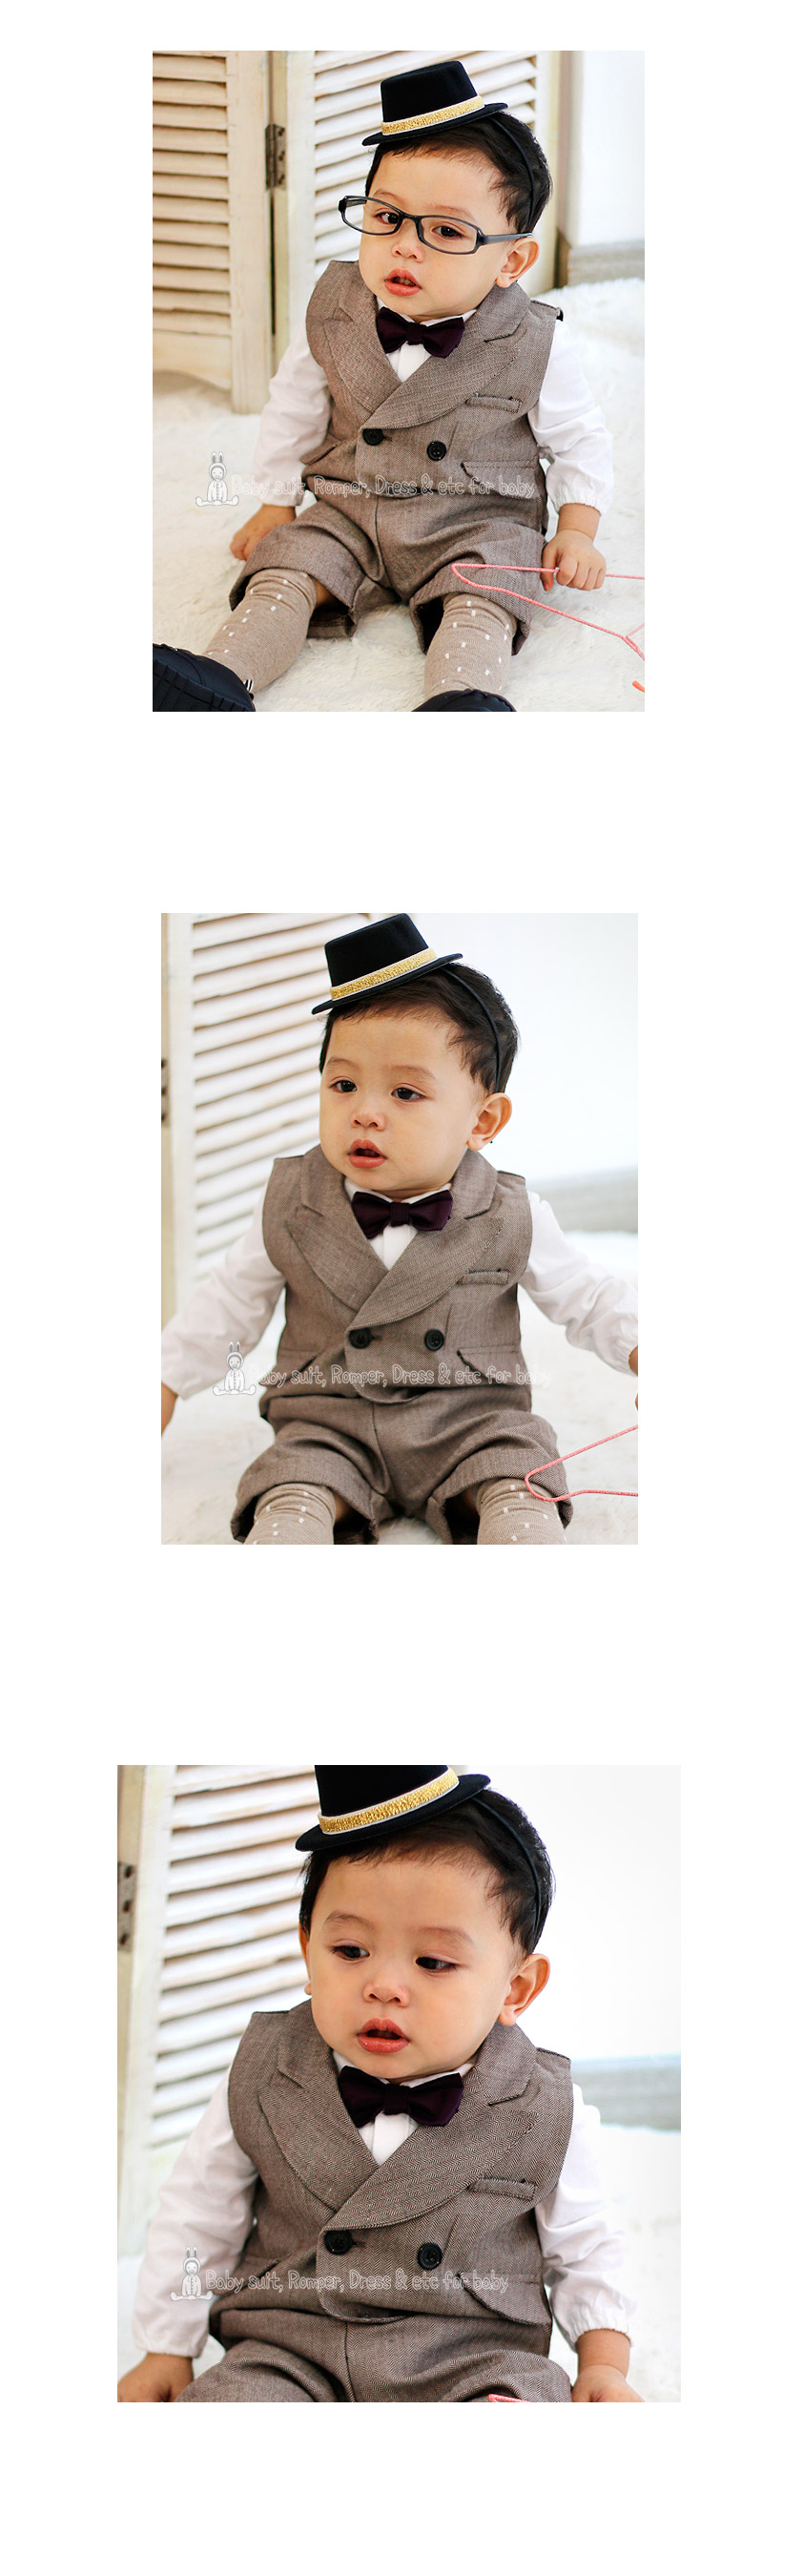 [ BABYMAX ] 1269 Windsor Bowtie suit / A hundred days baby tuxedo suit